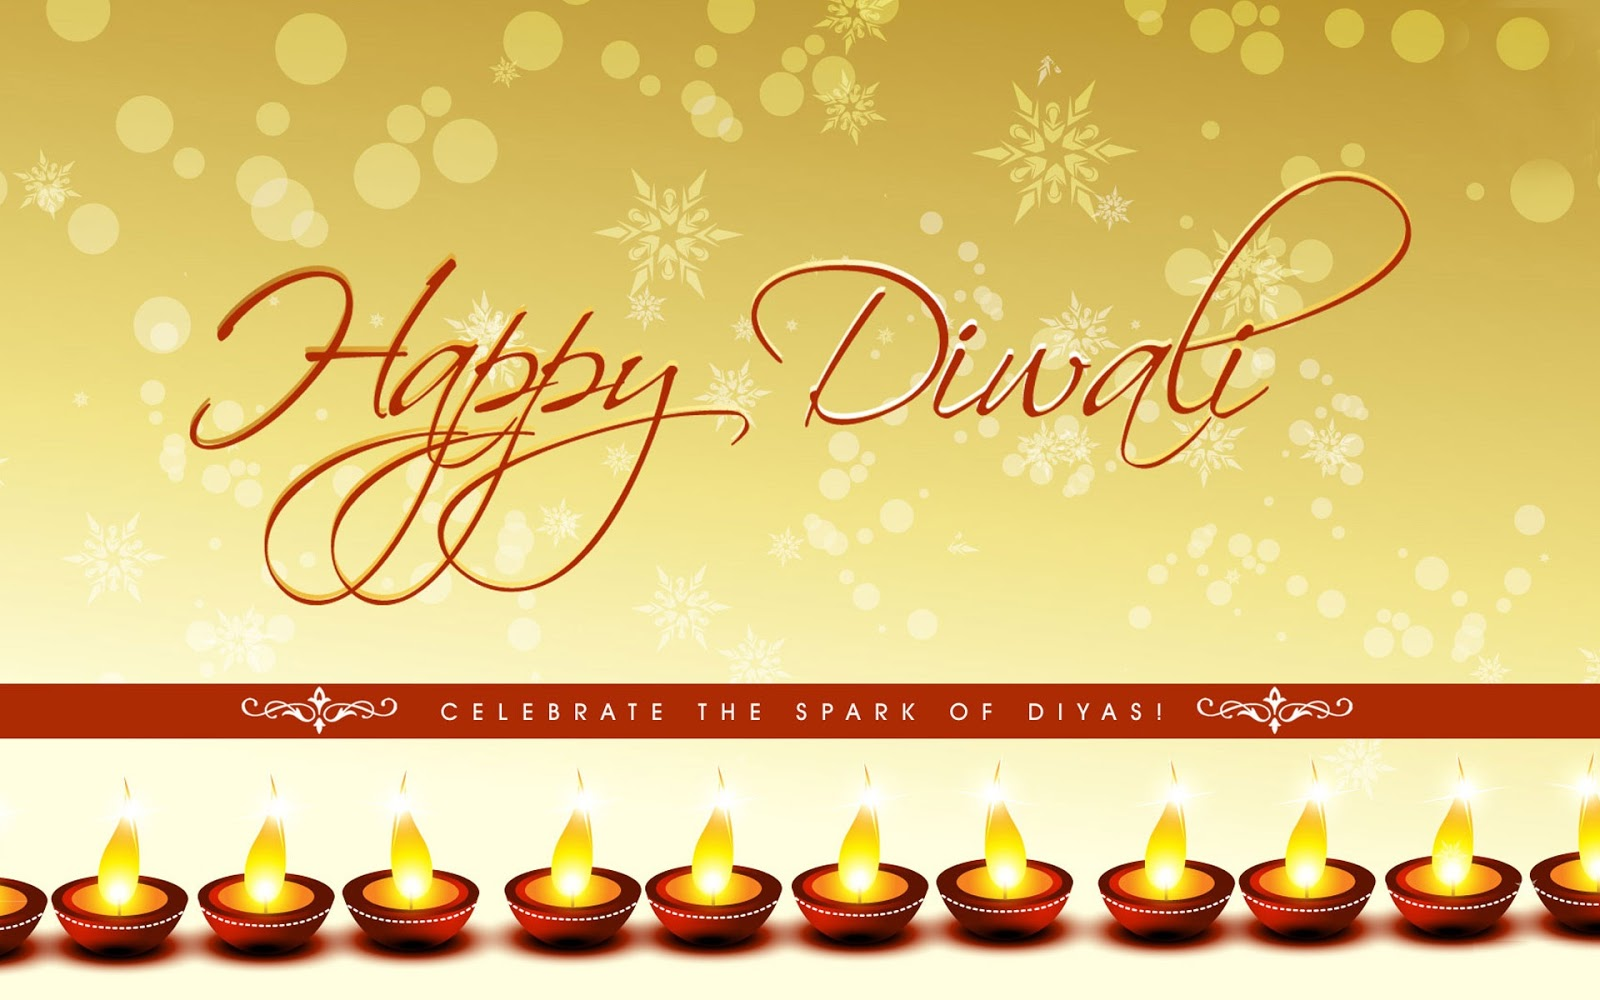 pictures deepavali greetings wallpapers - photo #28